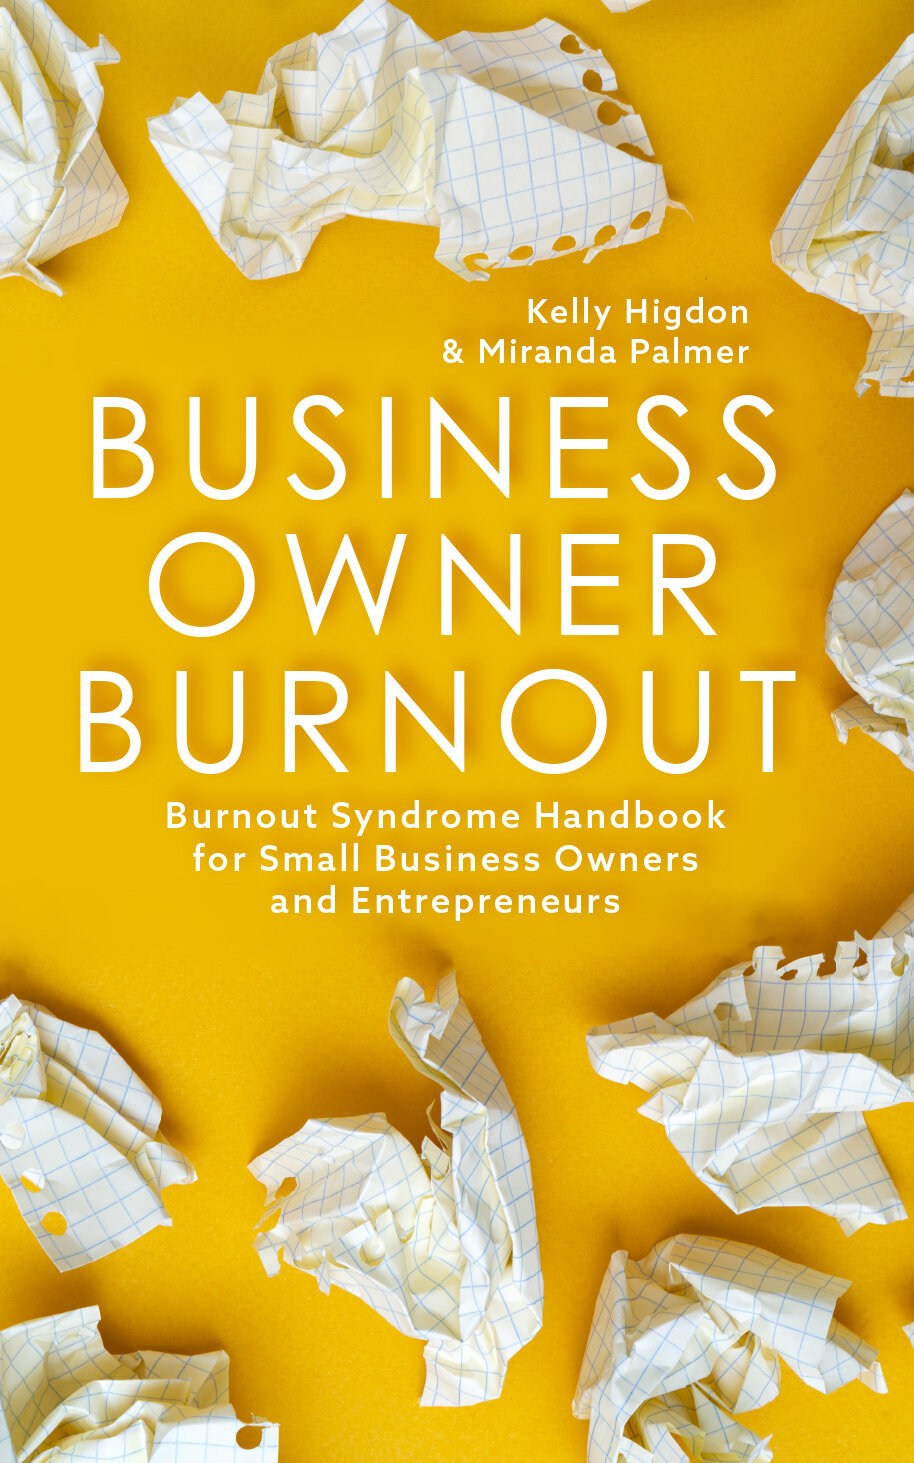 Business Owner Burnout